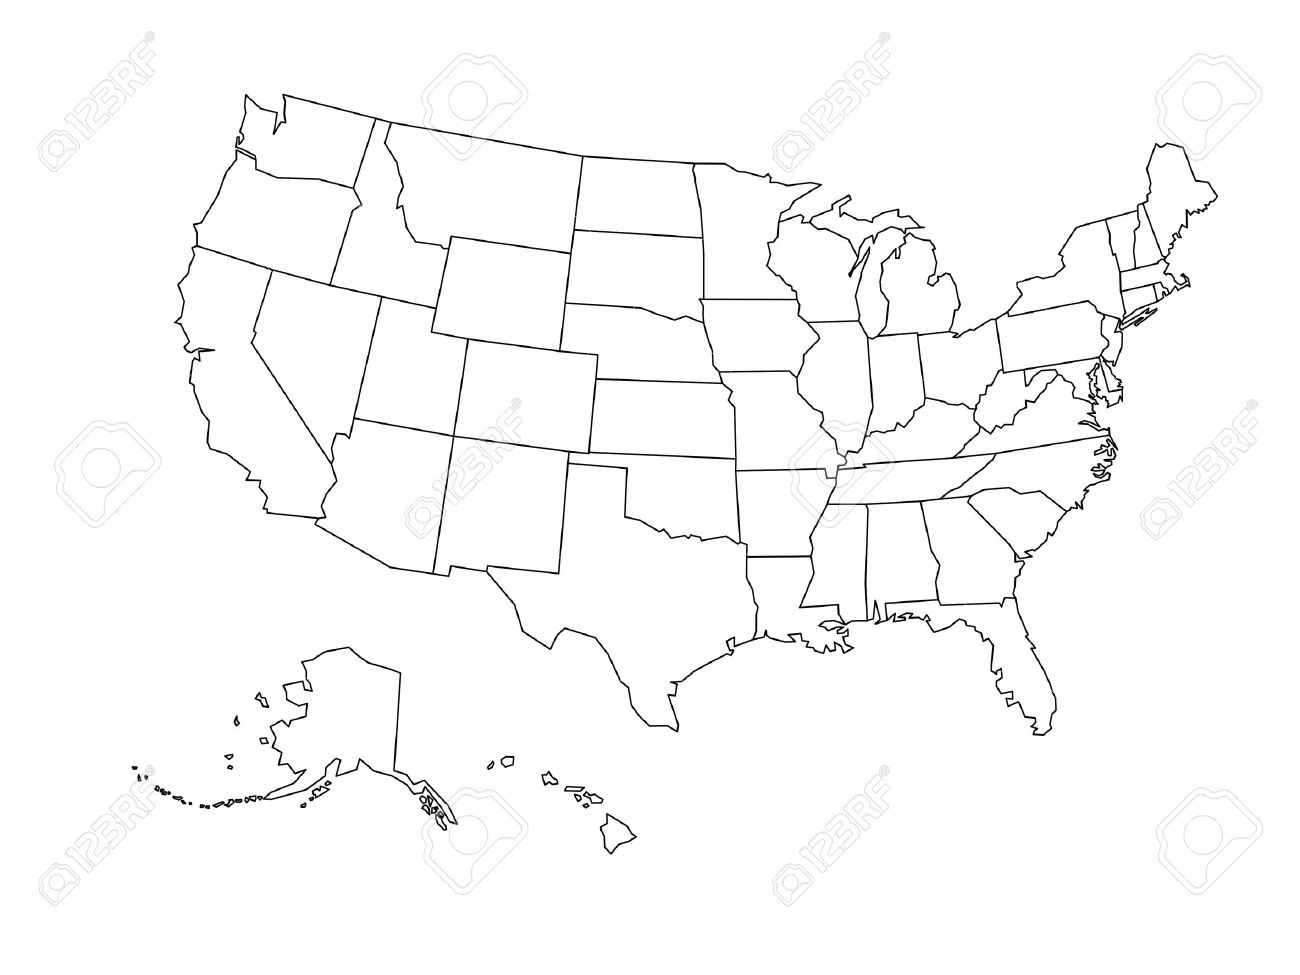 Blank outline map of United States of America. Simplified vector map made of black outline on white background. - 51846552